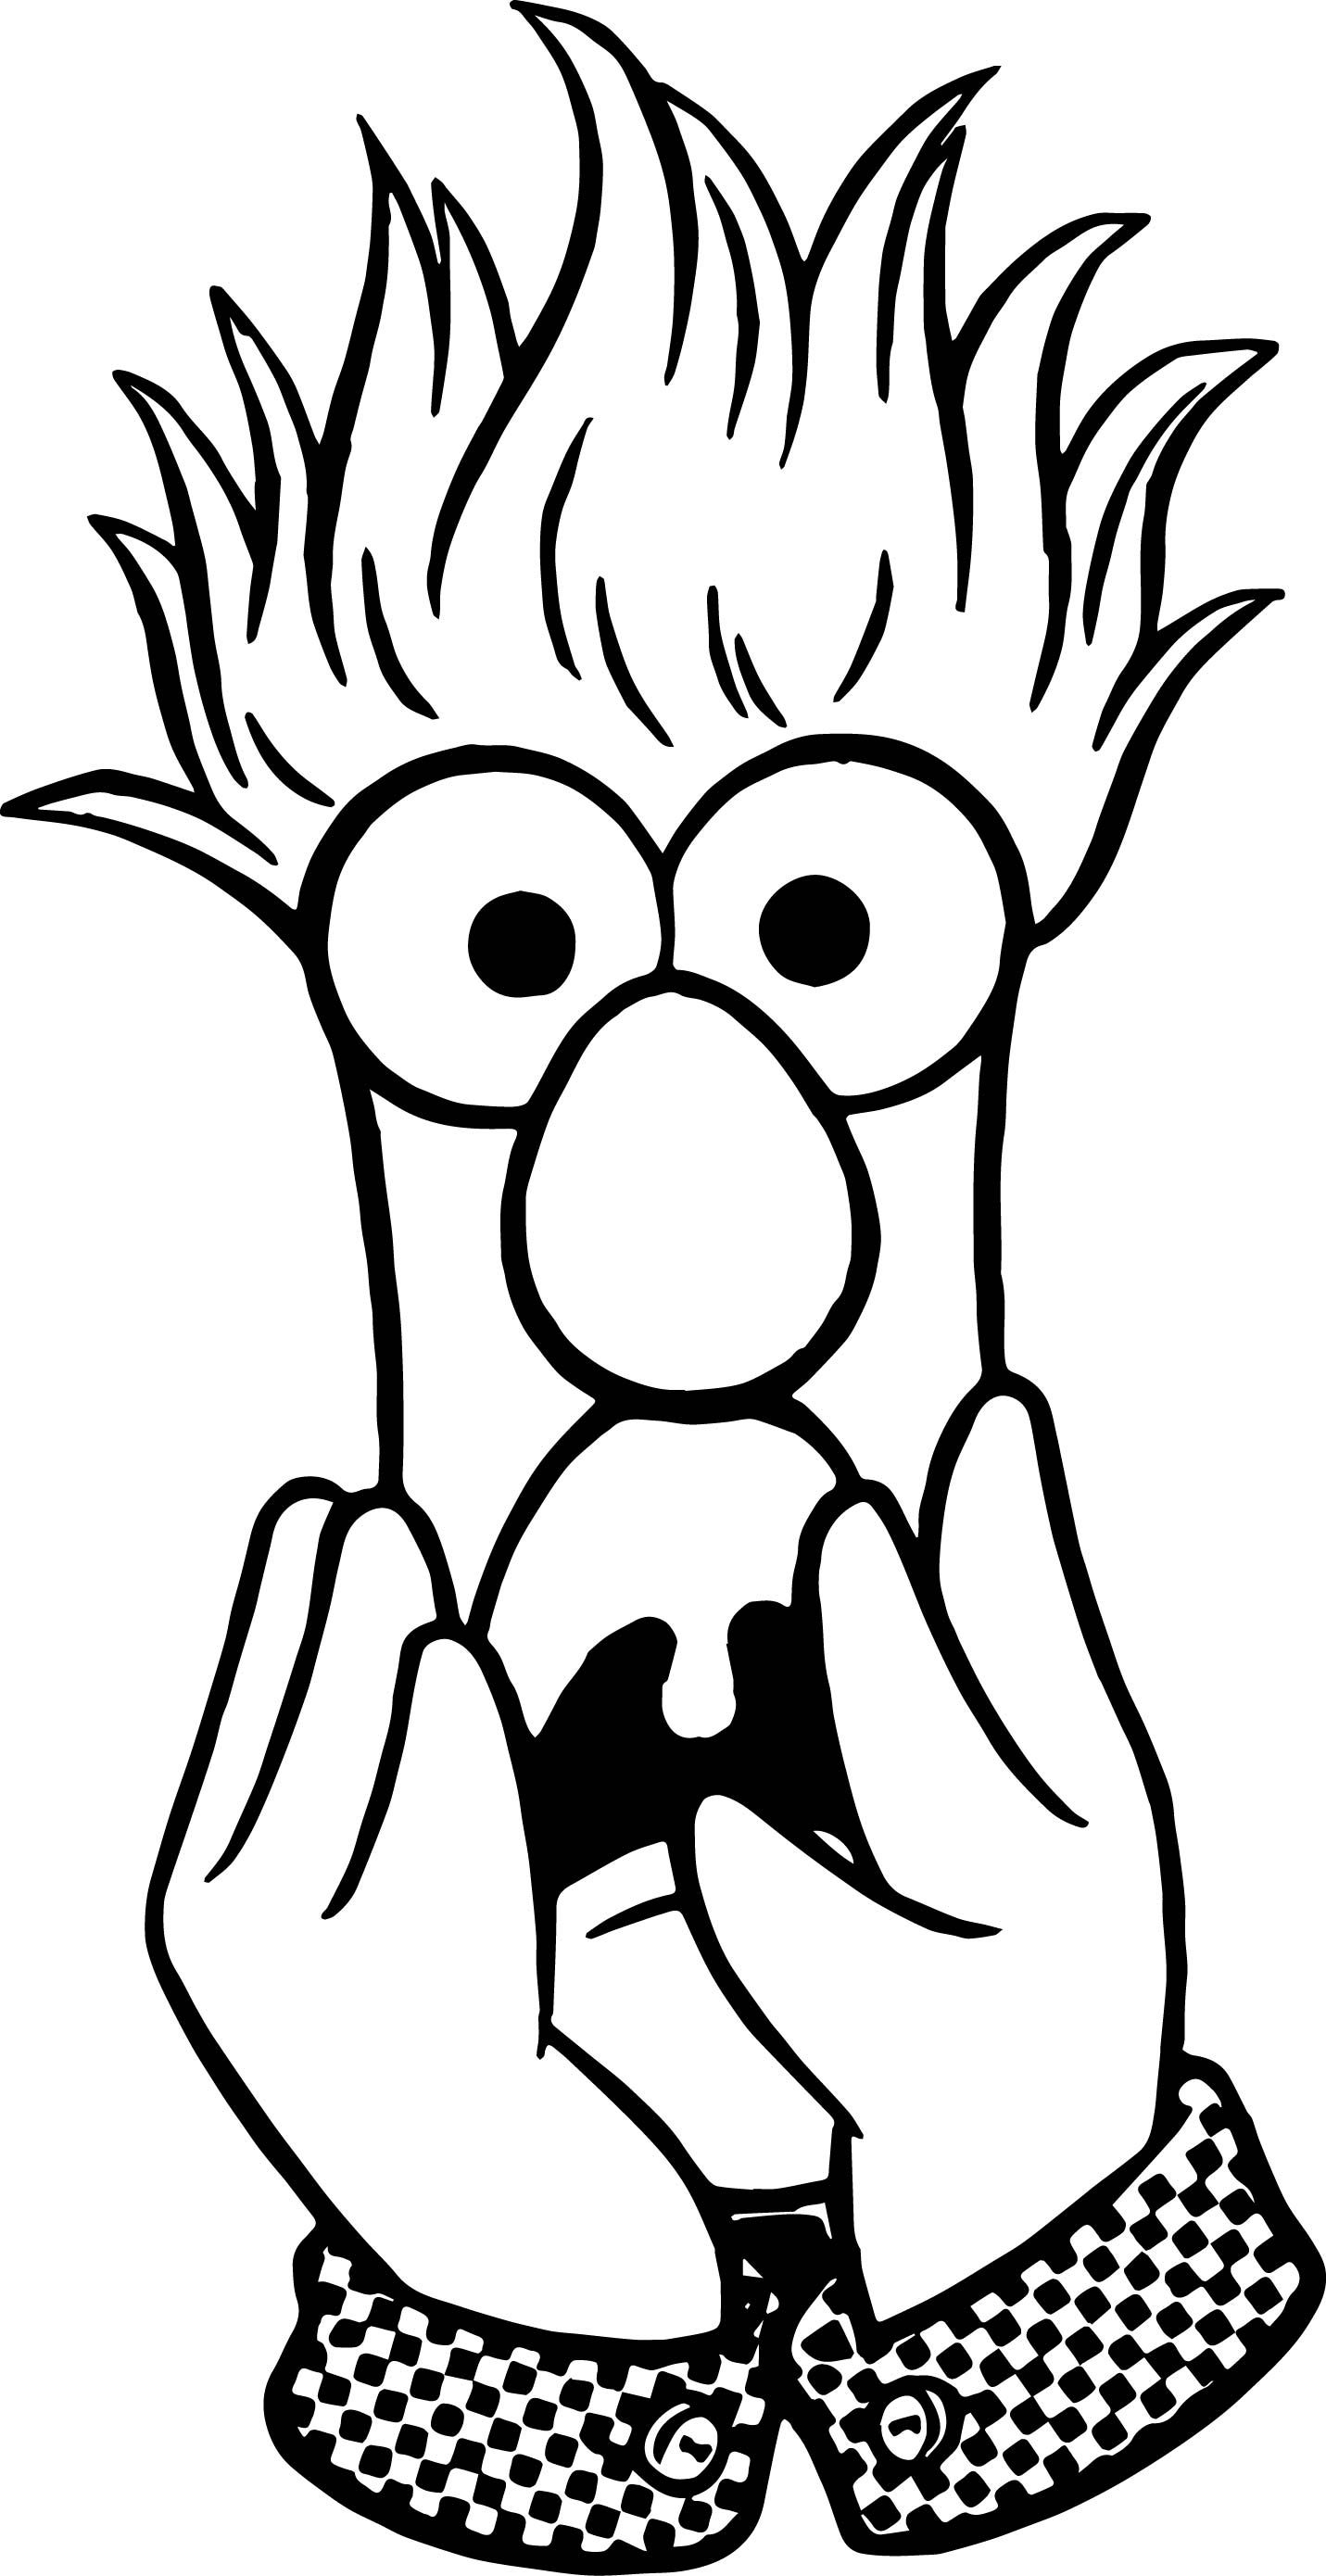 Cool The Muppets Muppets Beaker Fear Coloring Pages Coloring